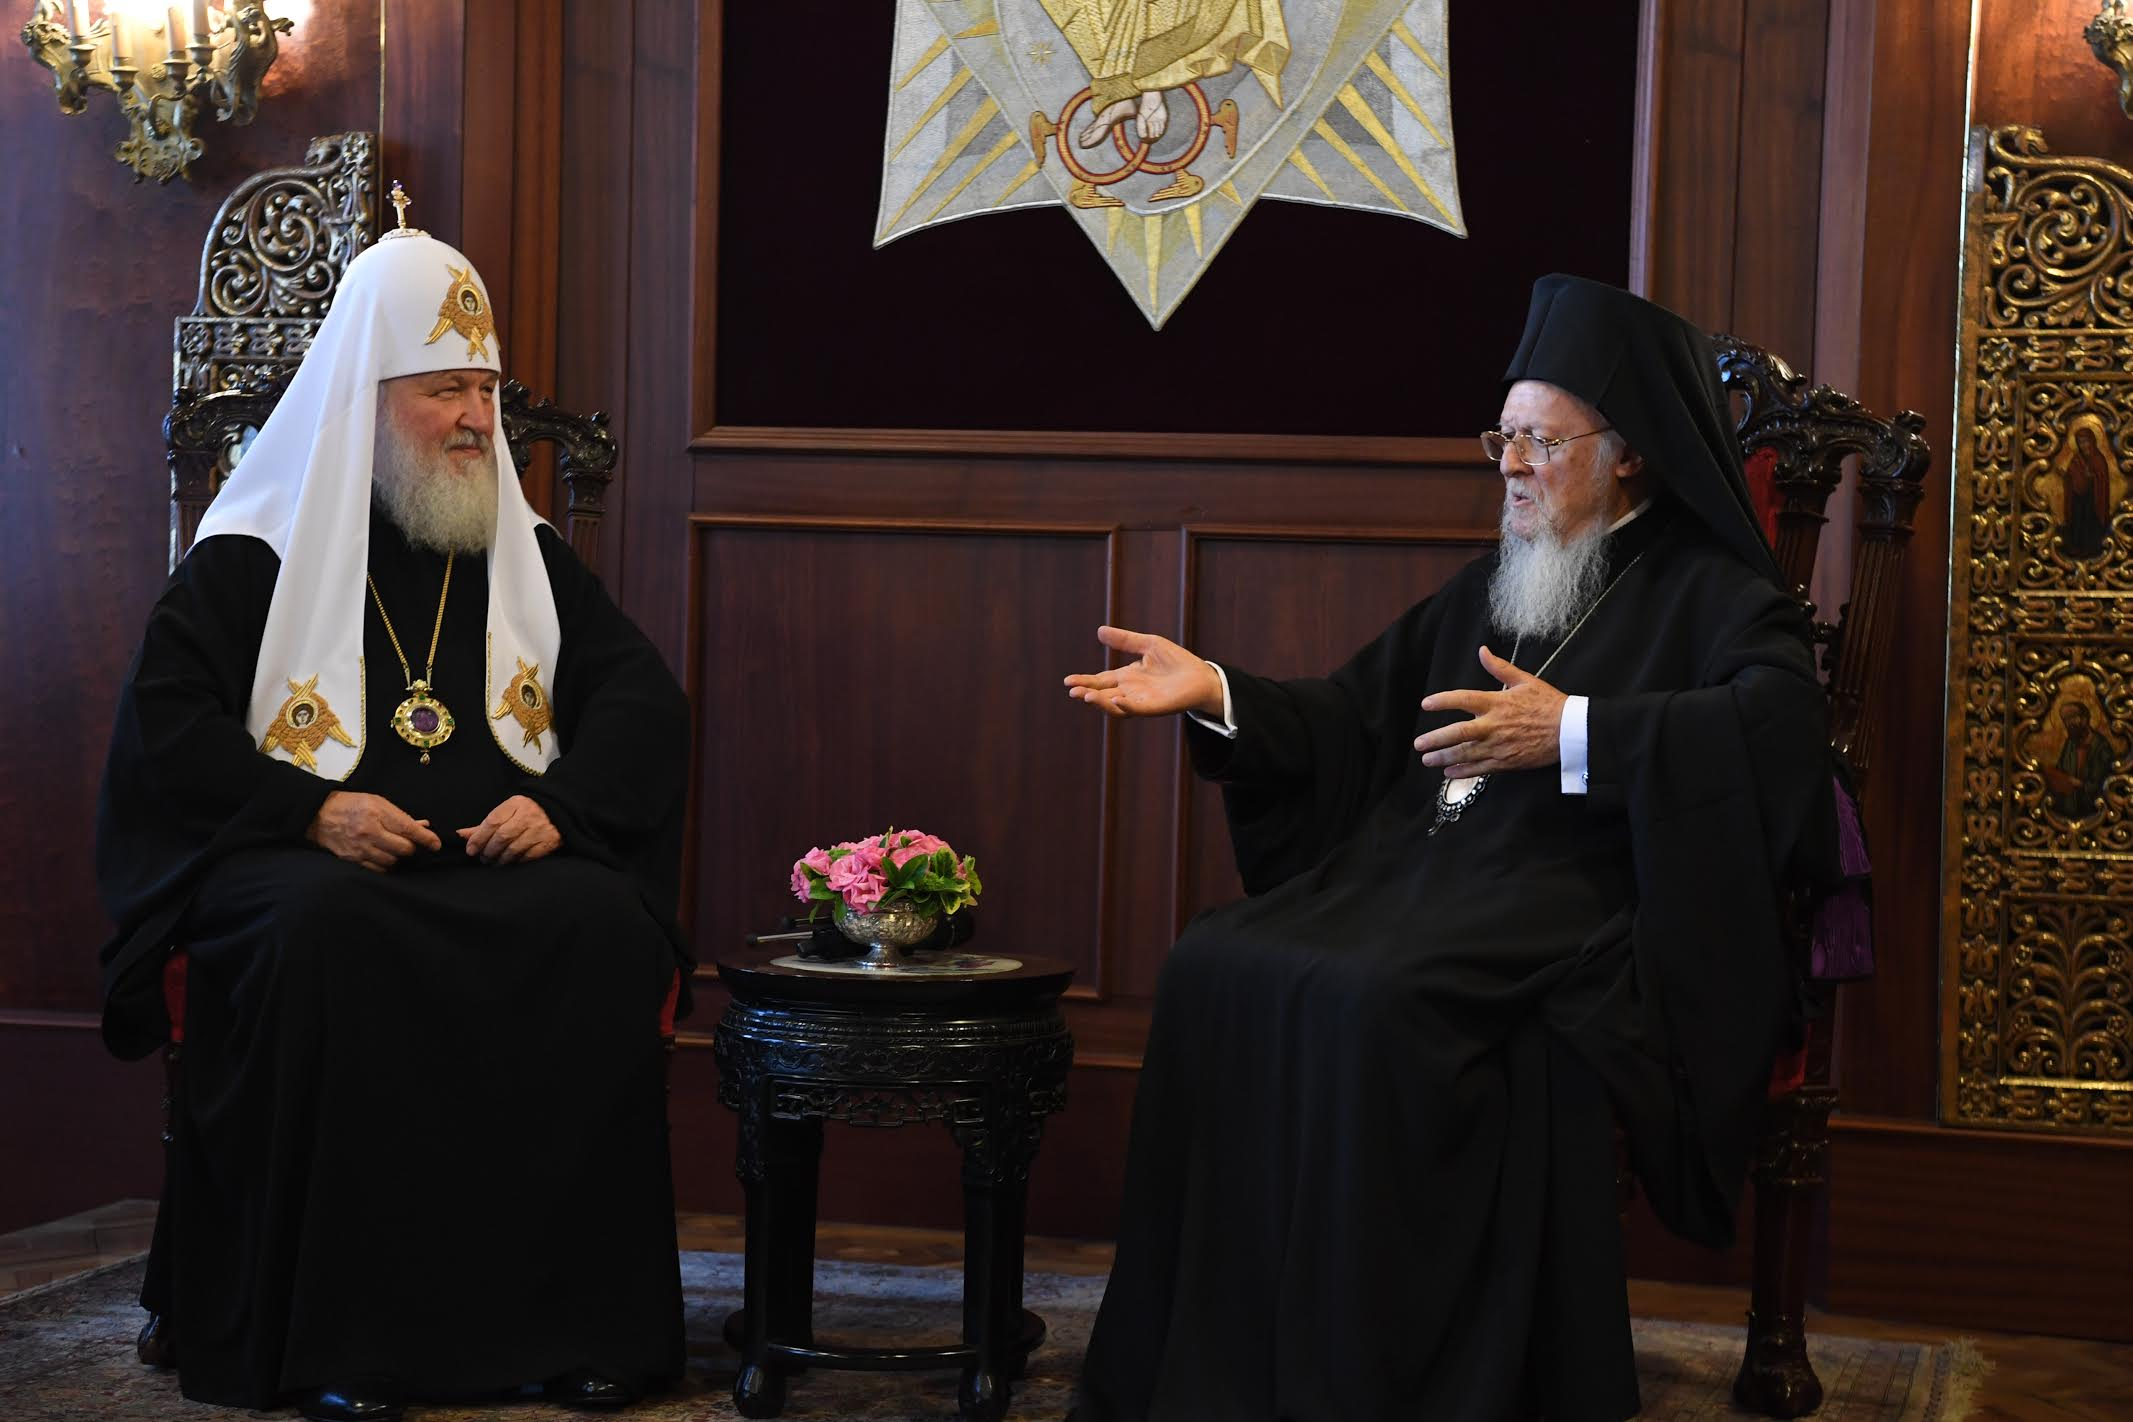 Patriarch Kirill of Moscow pays visit to Ecumenical Patriarch Bartholomew I